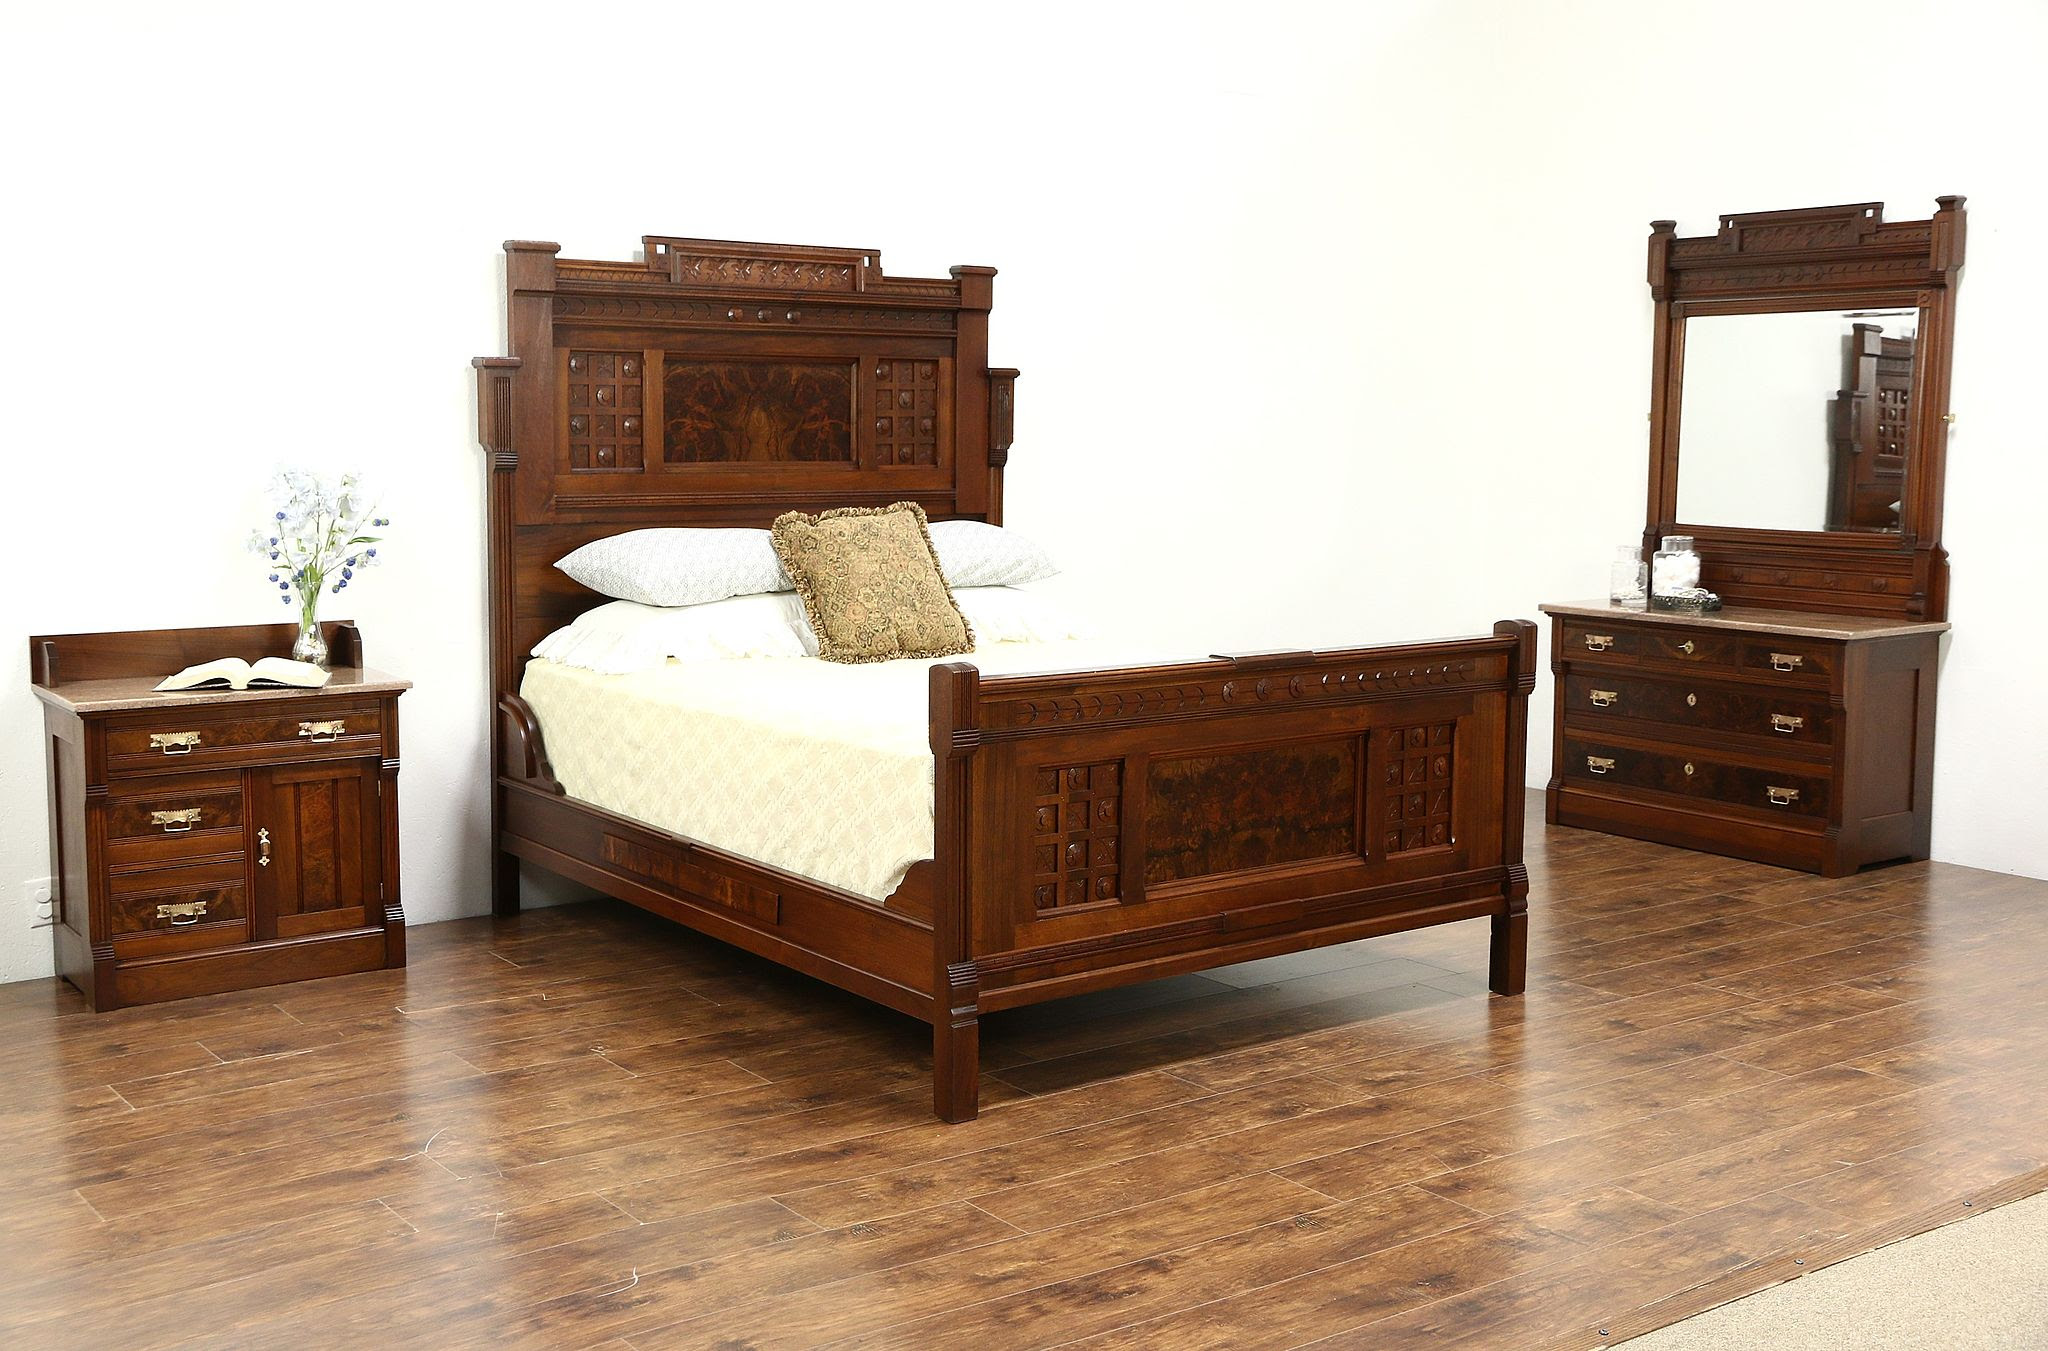 55 Queen Size Bedroom Sets With Dressers Best HD